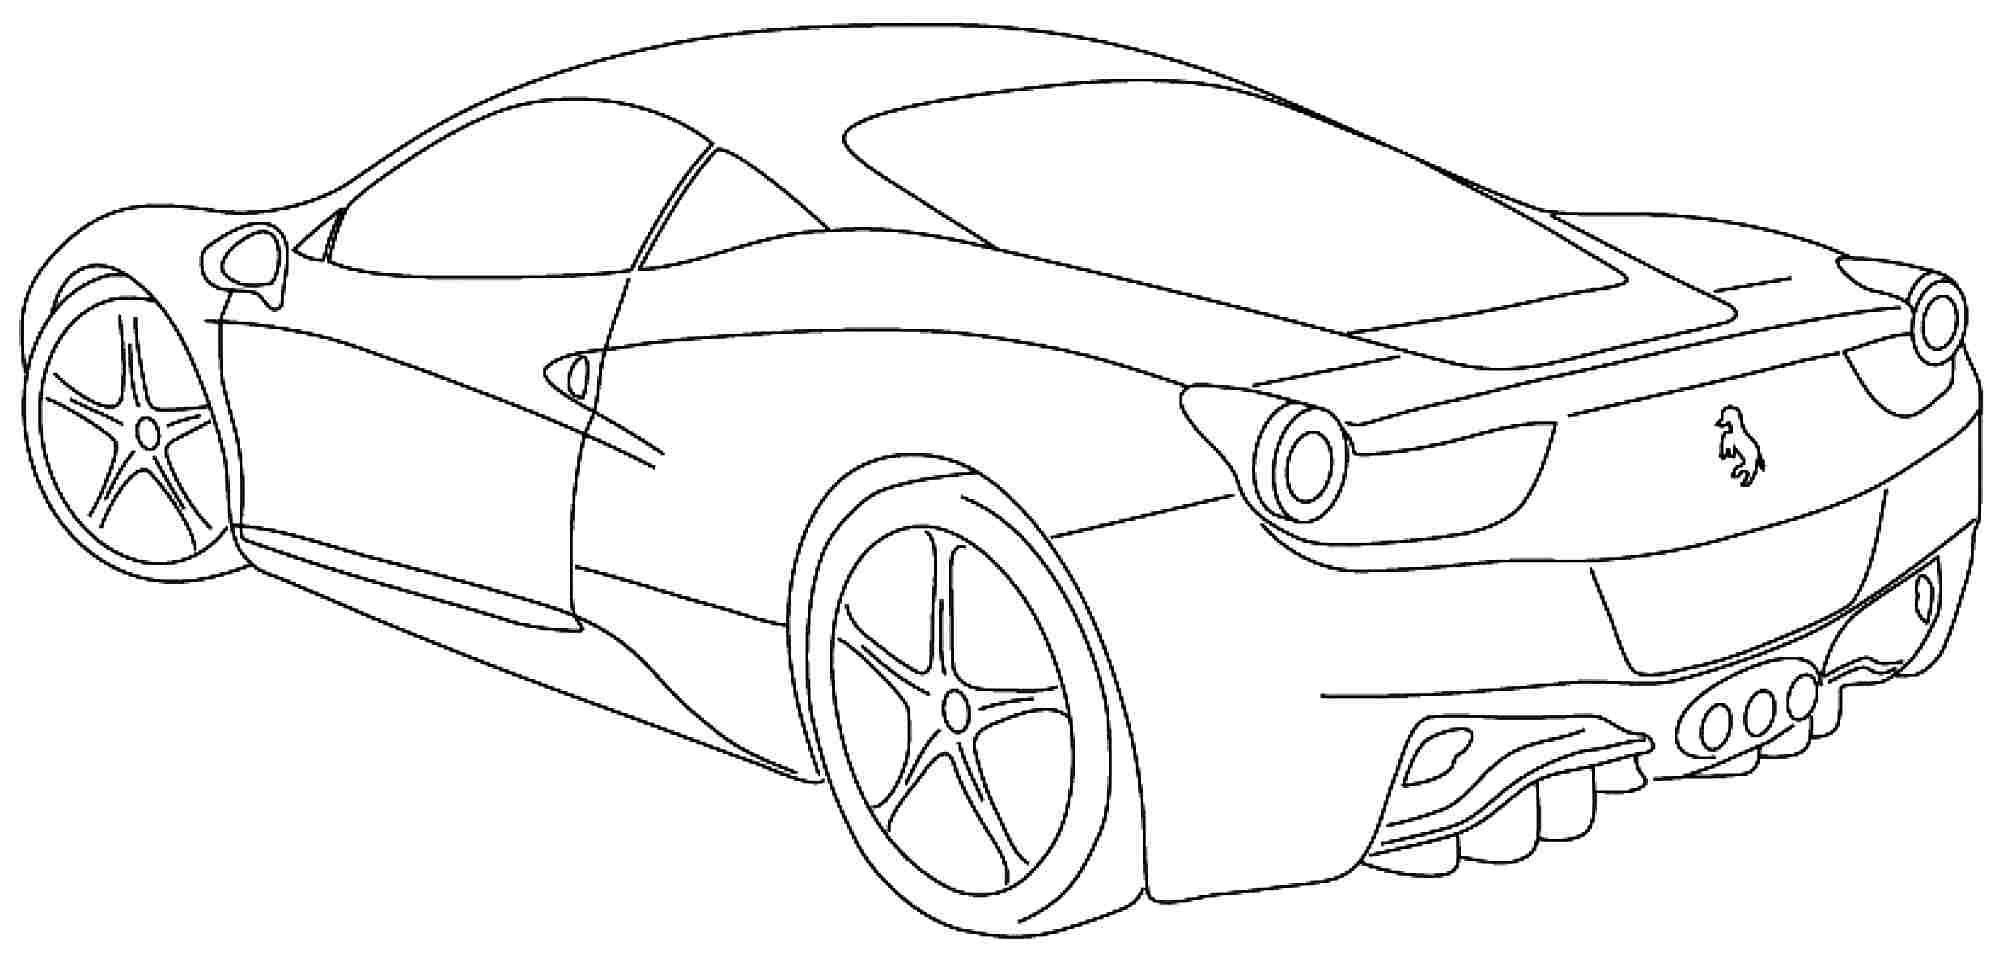 coloring pages of ferrari ferrari coloring pages free printable ferrari coloring pages ferrari of pages coloring